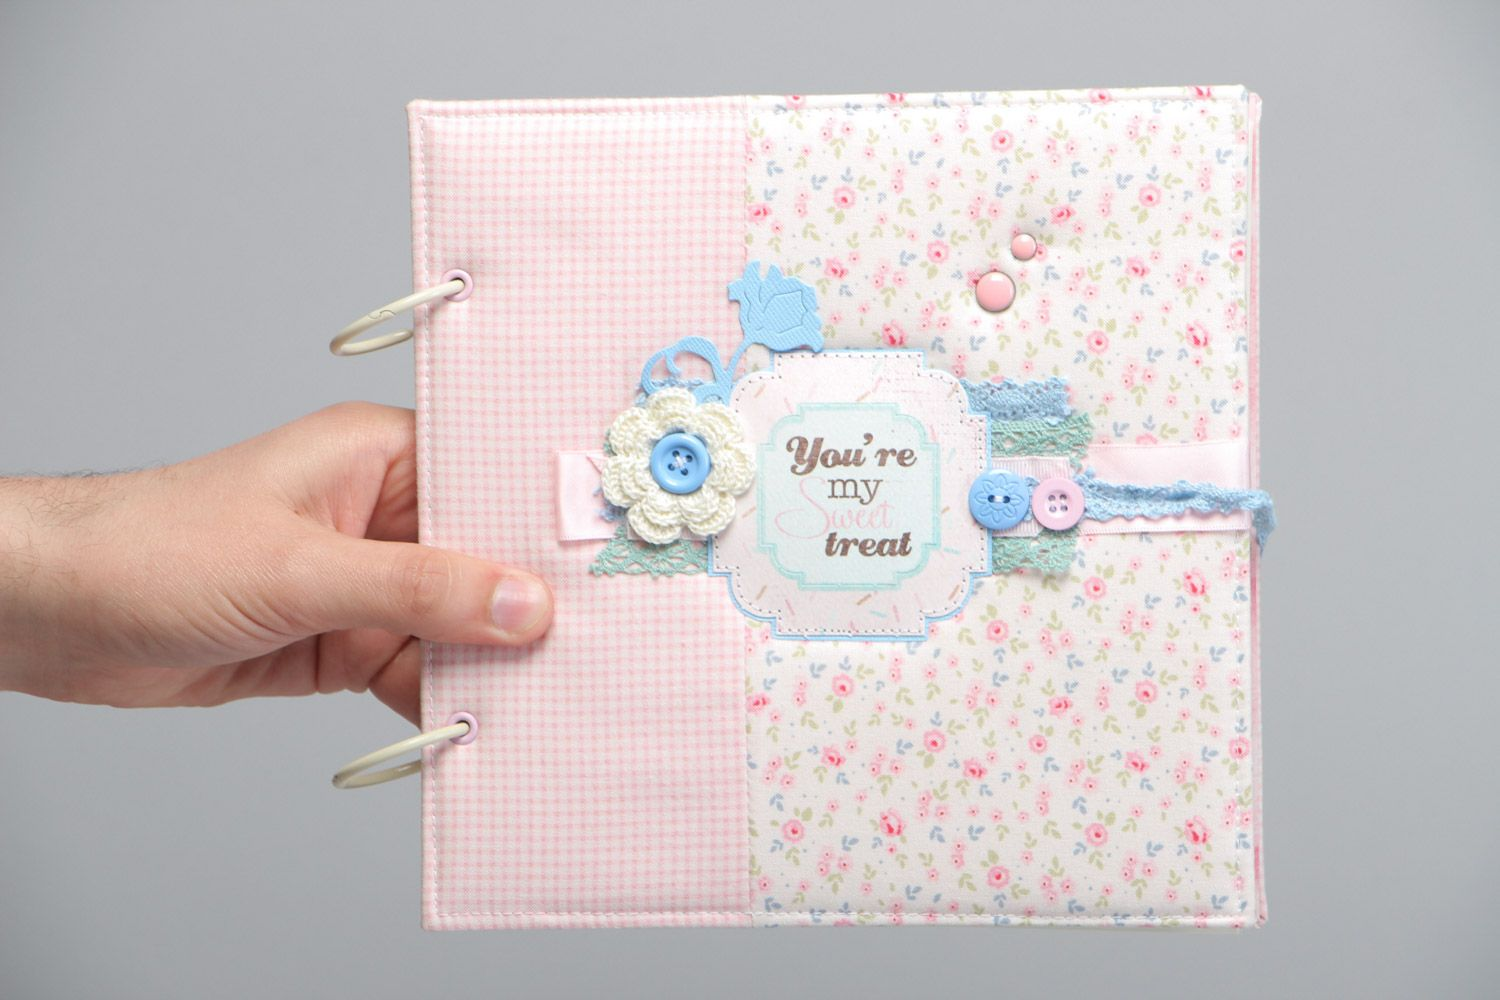 Handmade designer scrapbooking photo album for 25 pages in pink colors photo 5